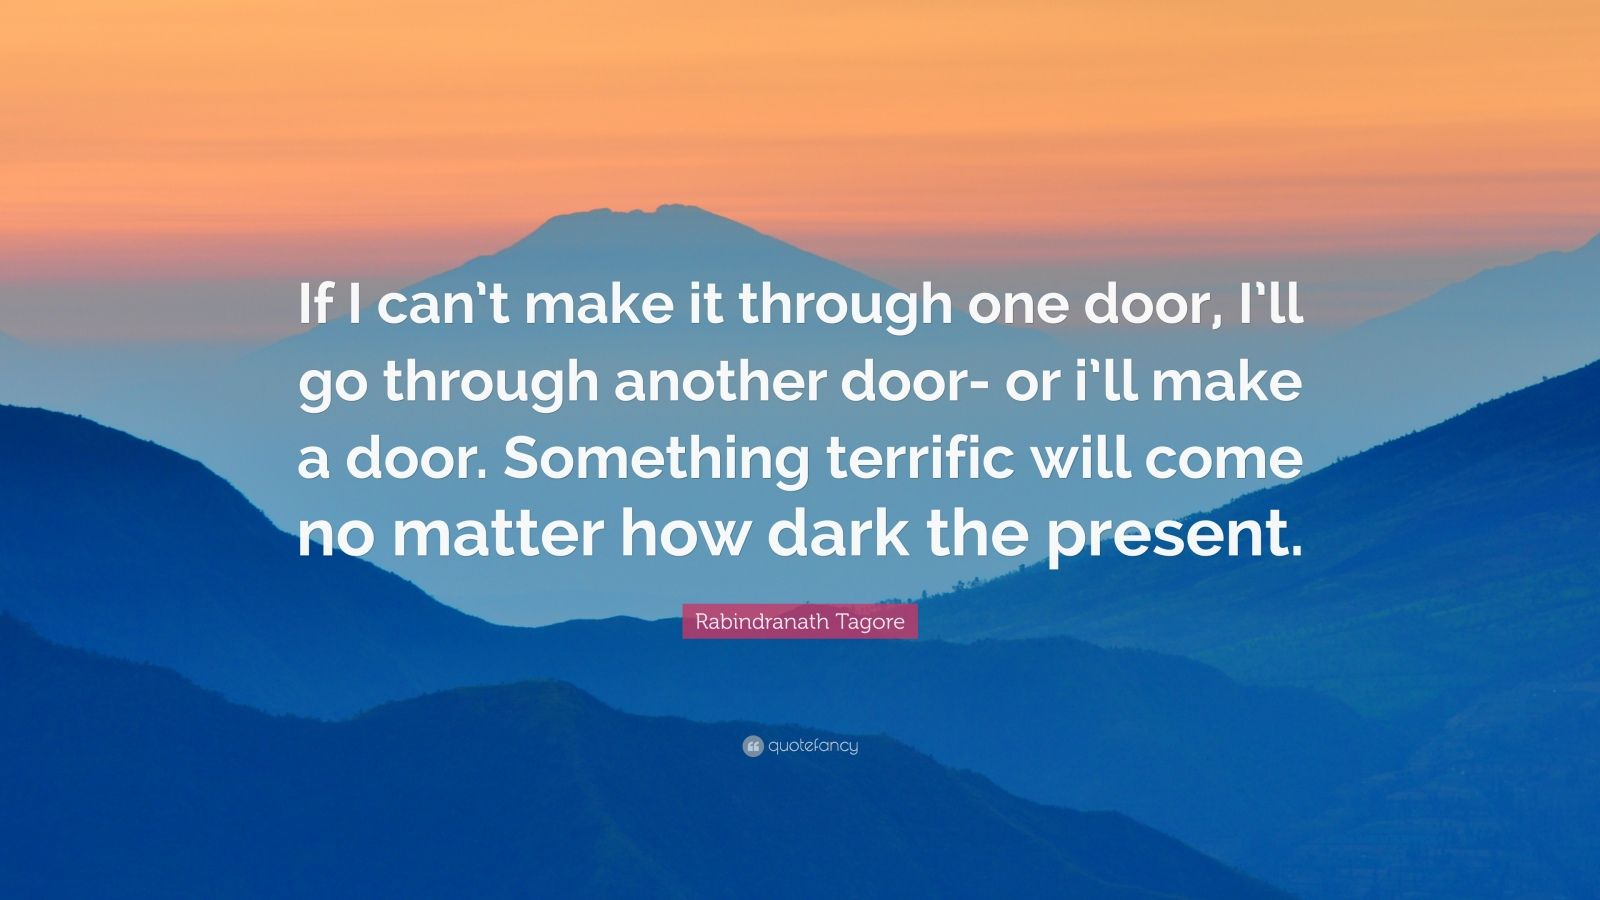 """Rabindranath Tagore Quote: """"If I can't make it through one door, I'll go through another door- or i'll make a door. Something terrific will come no matter how dark the present."""""""